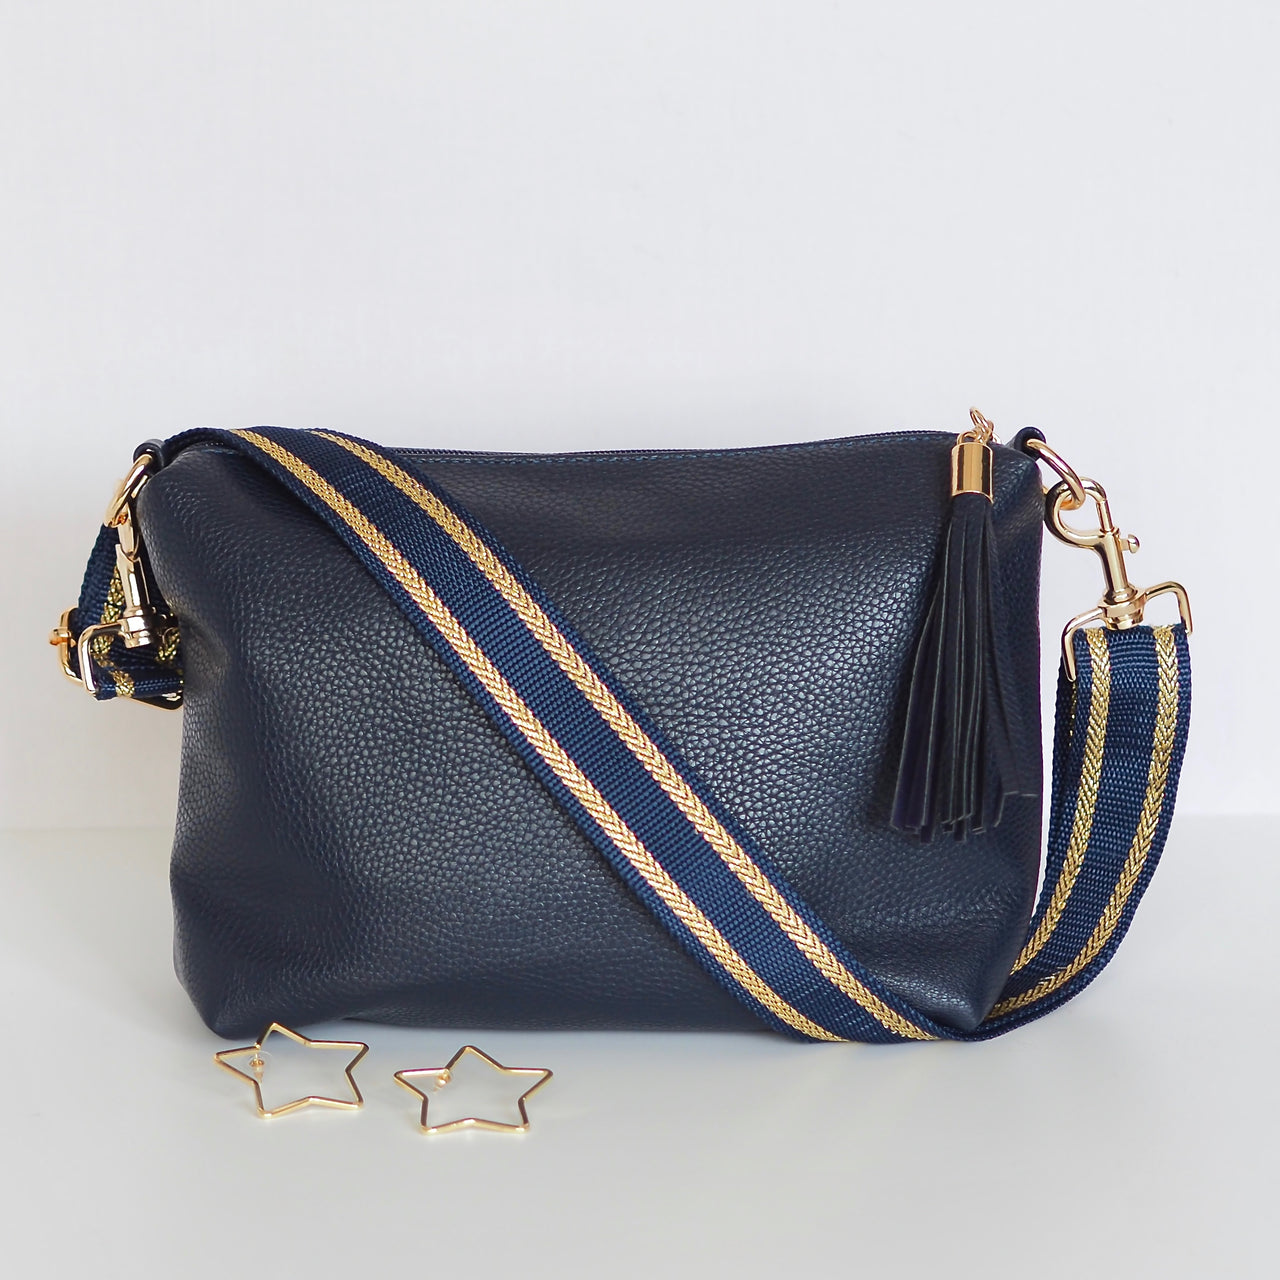 Luxe Navy and Gold Strap